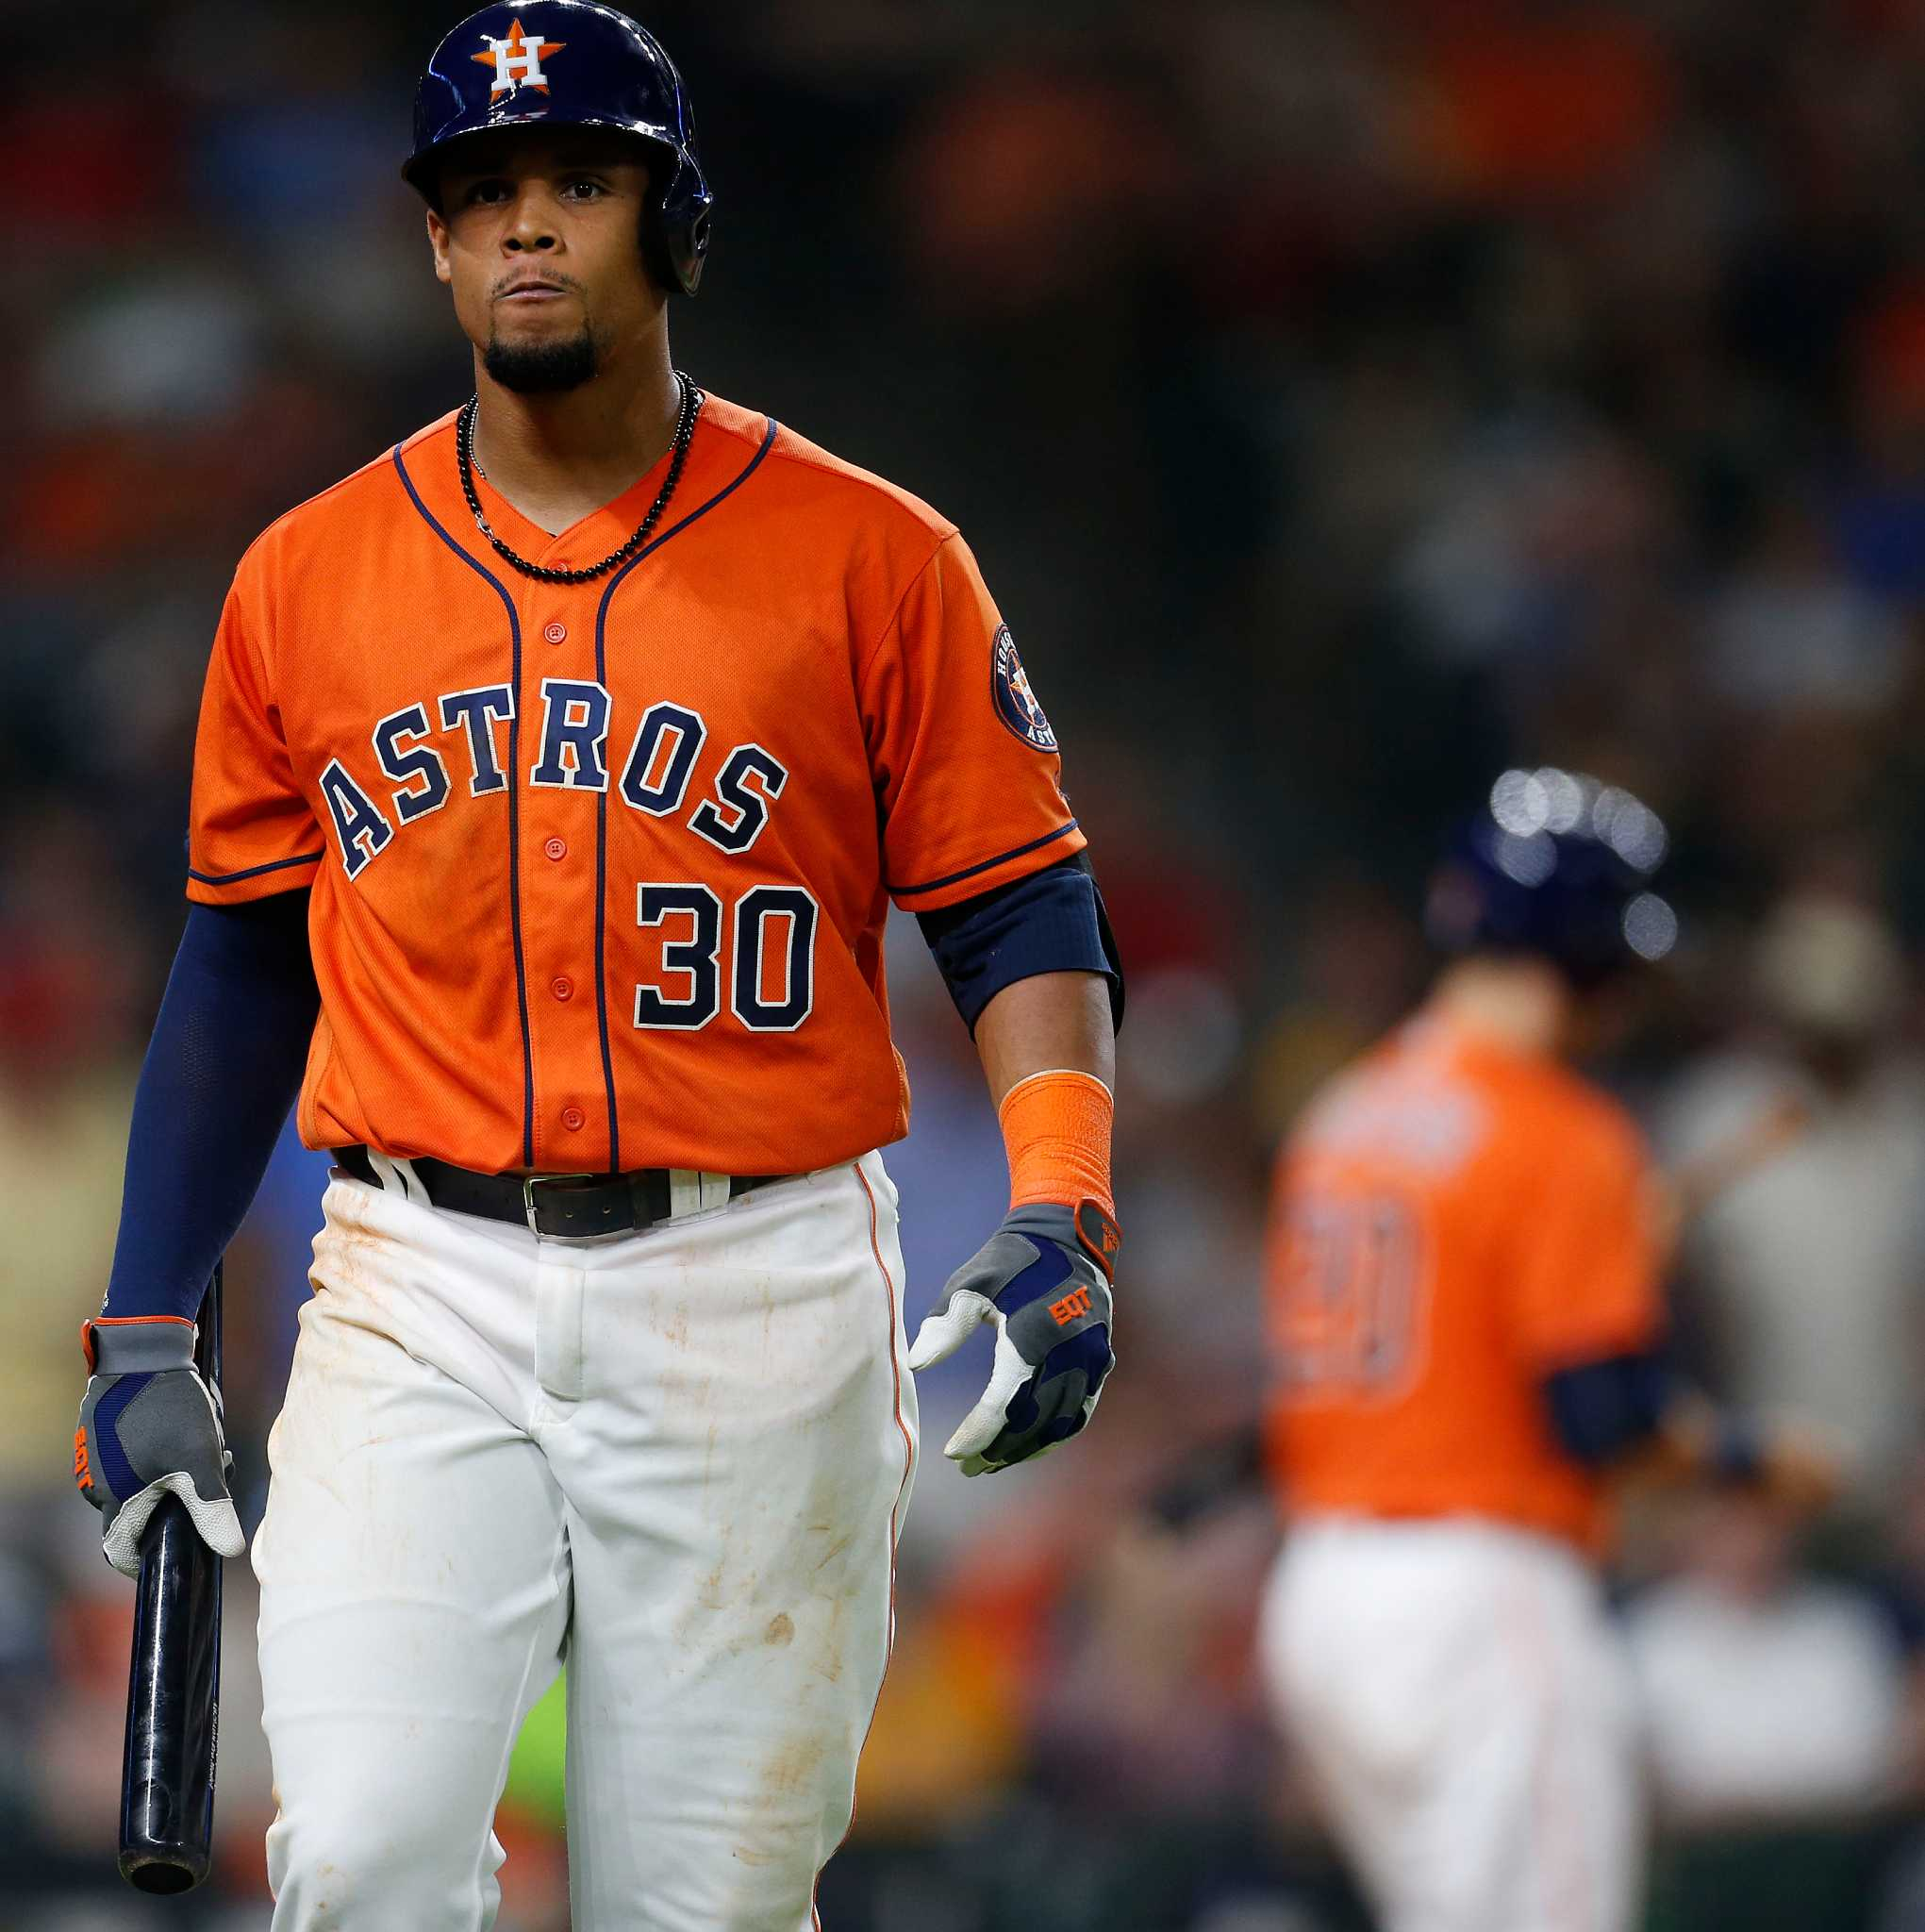 Carlos Gomez And The Most Disappointing Astros